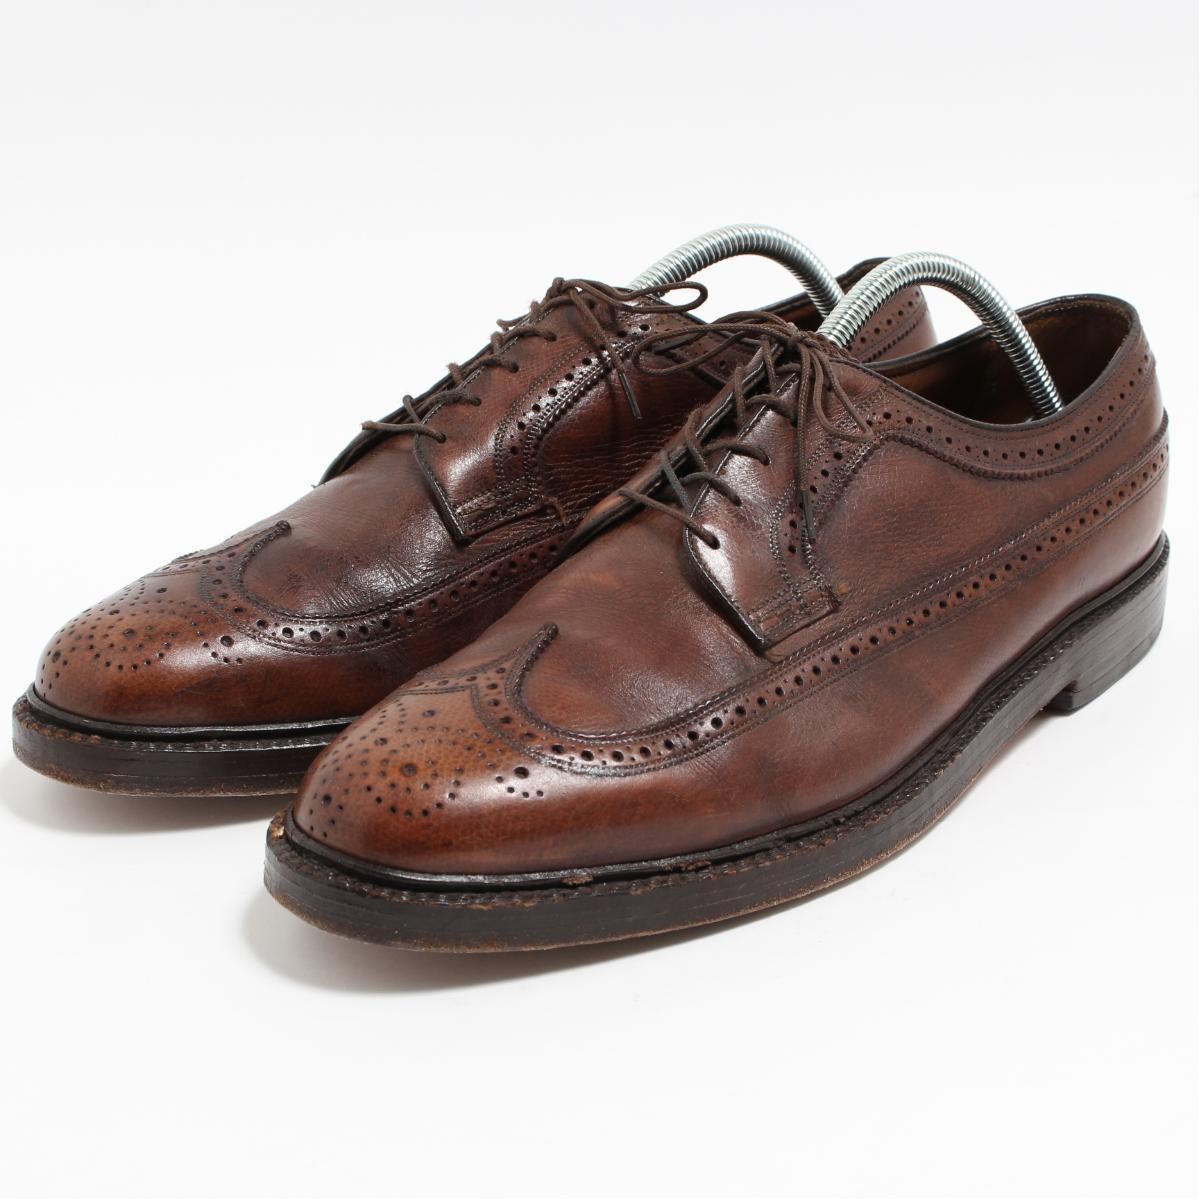 05bbfff9a9 10EEE men 28.0cm vintage  boo7261 in the 70s made in Florsheim Florsheim  IMPERIAL Imperial wing tip shoes USA